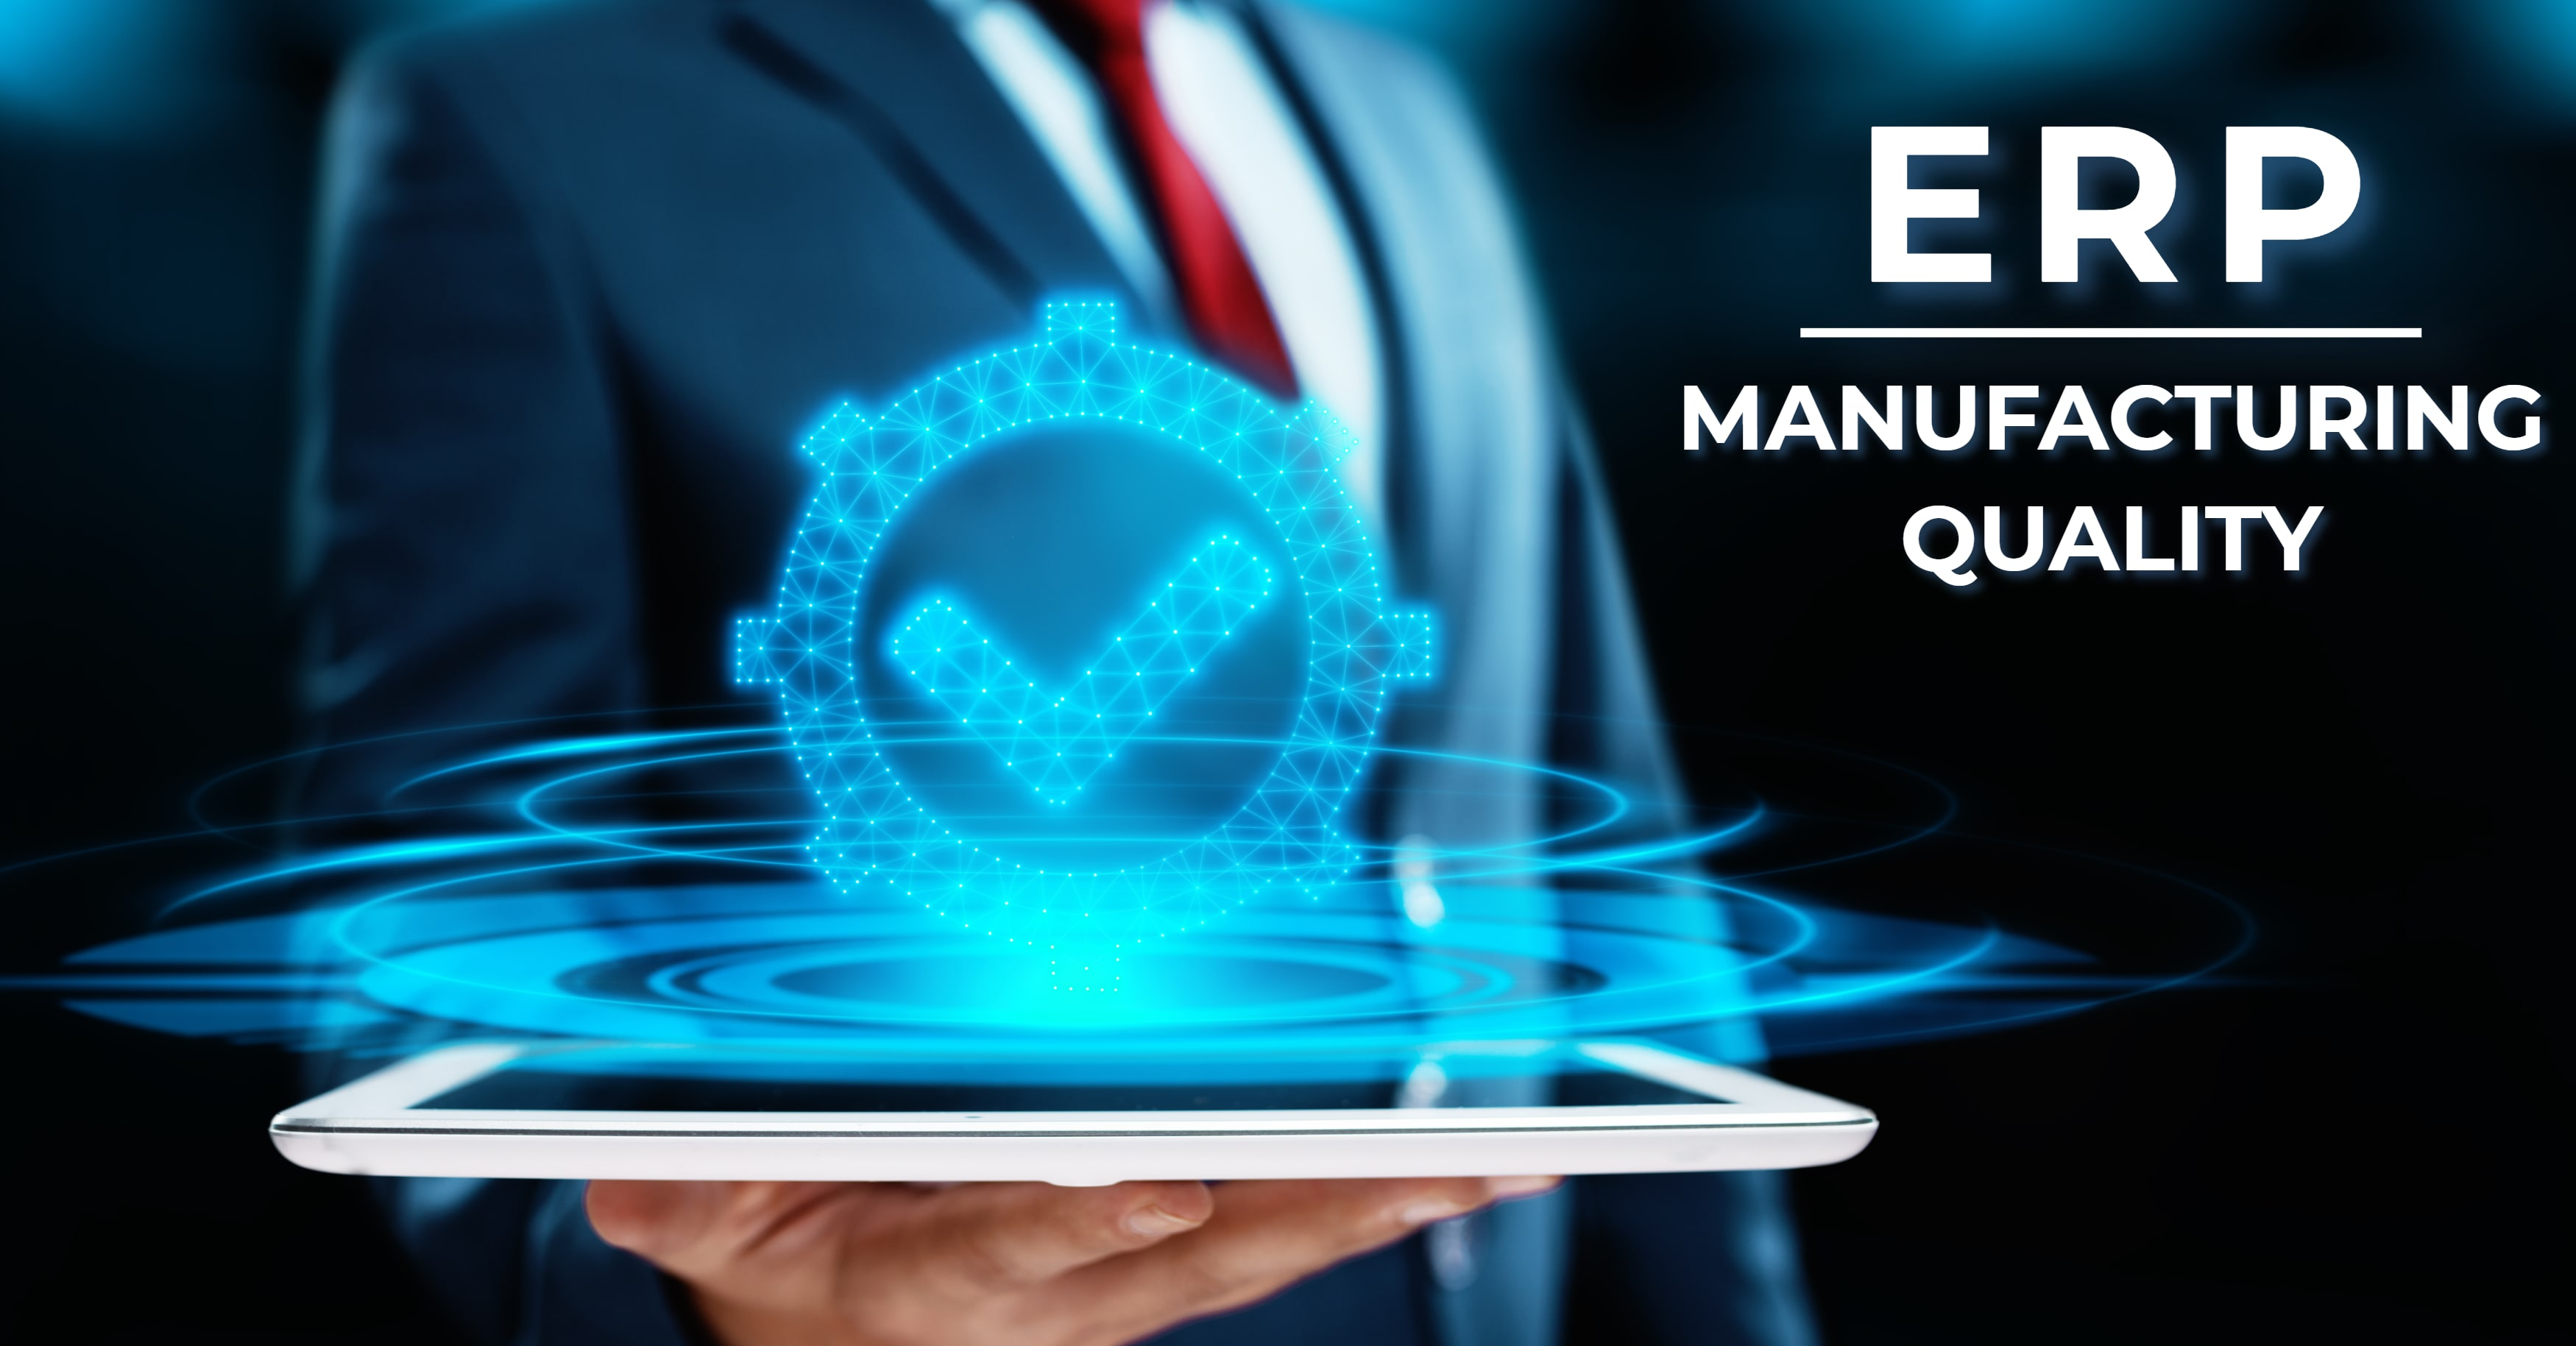 erp manufacturing quality